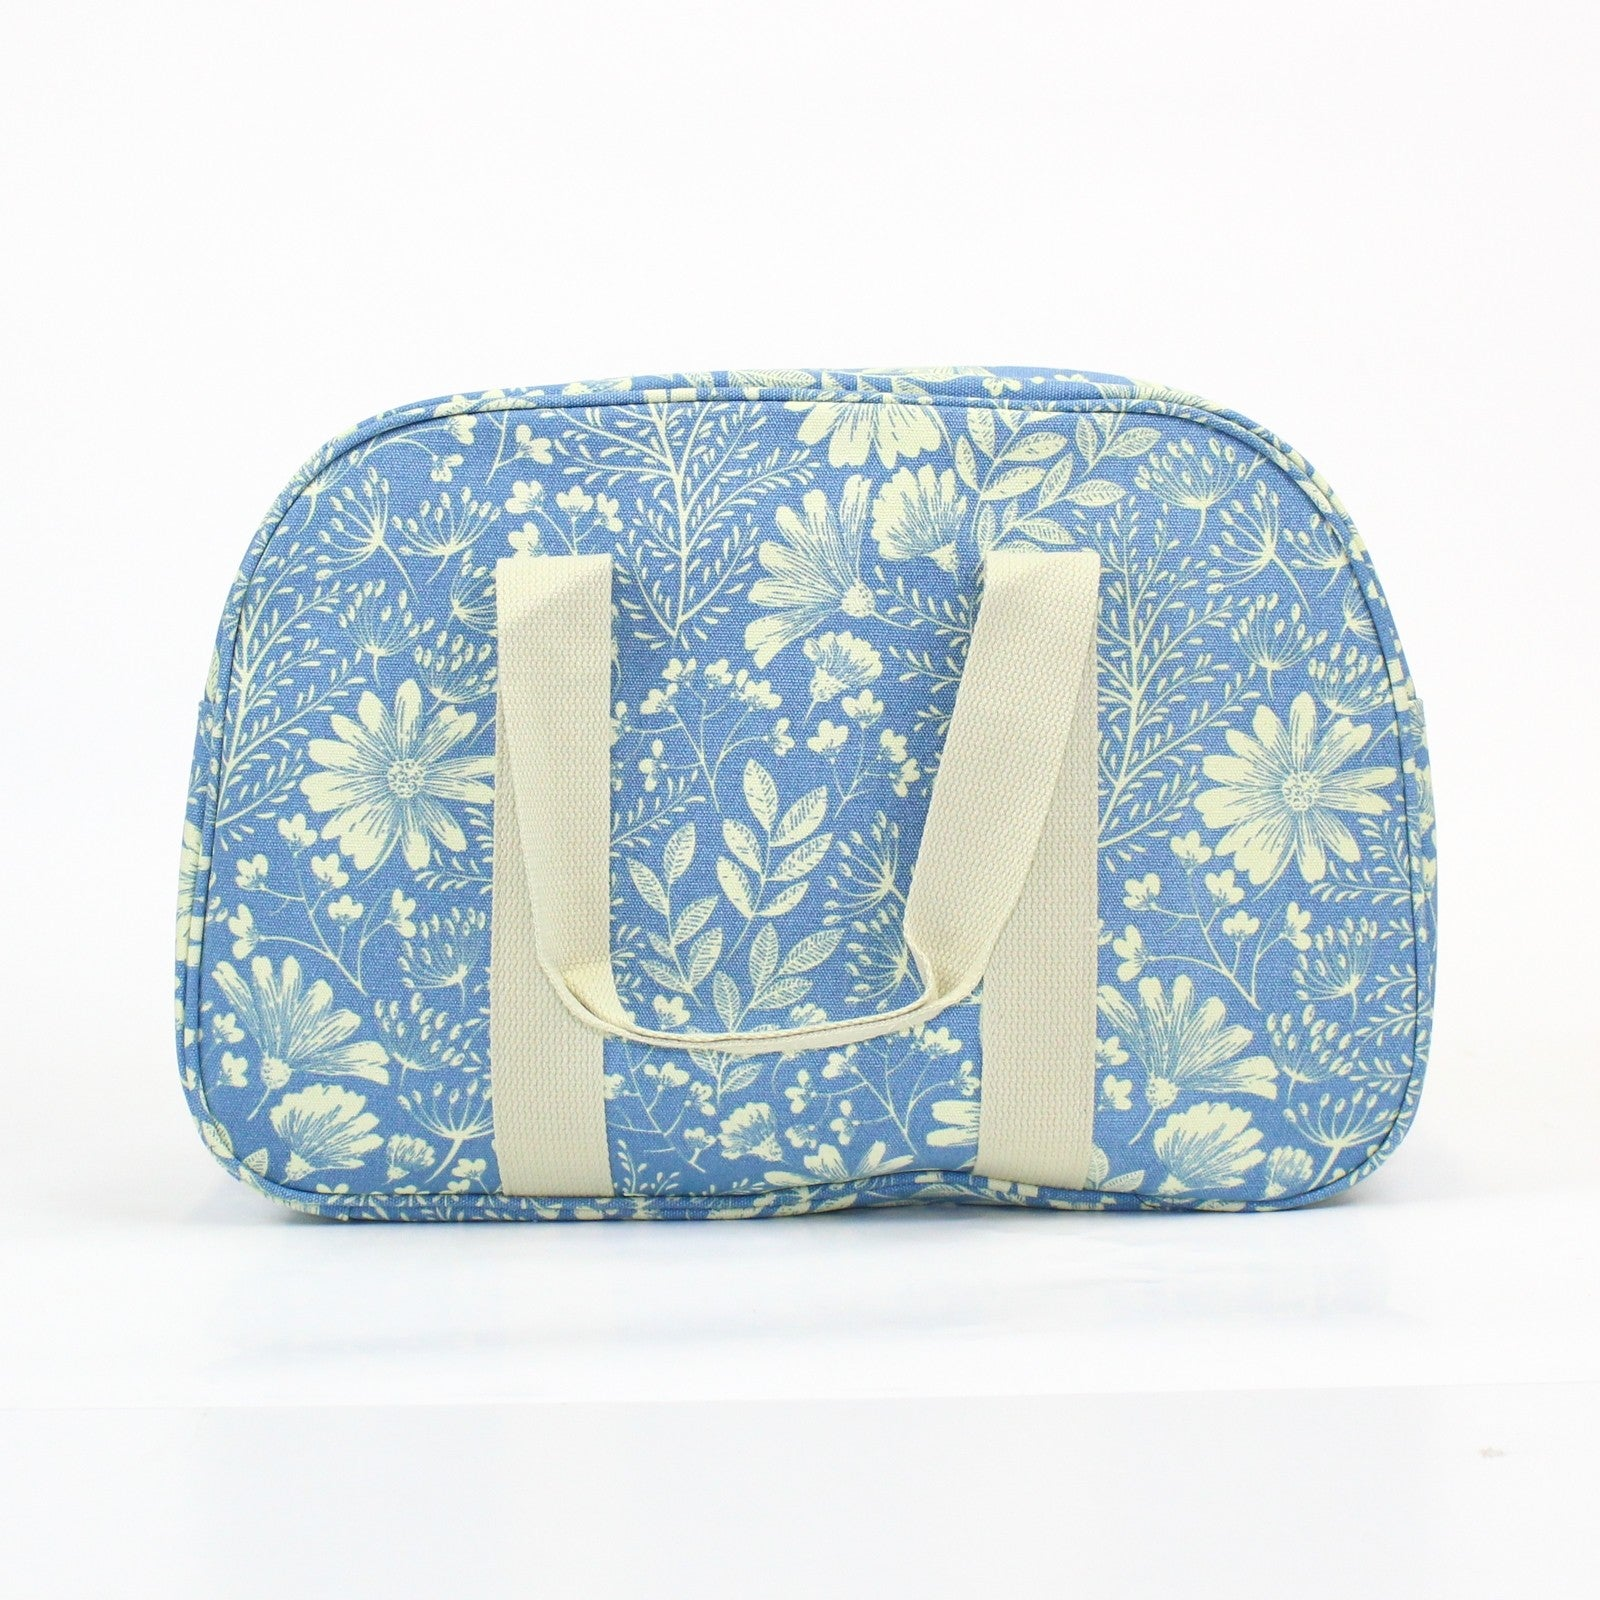 Pretty floral print weekend bag, on a light powder blue background.